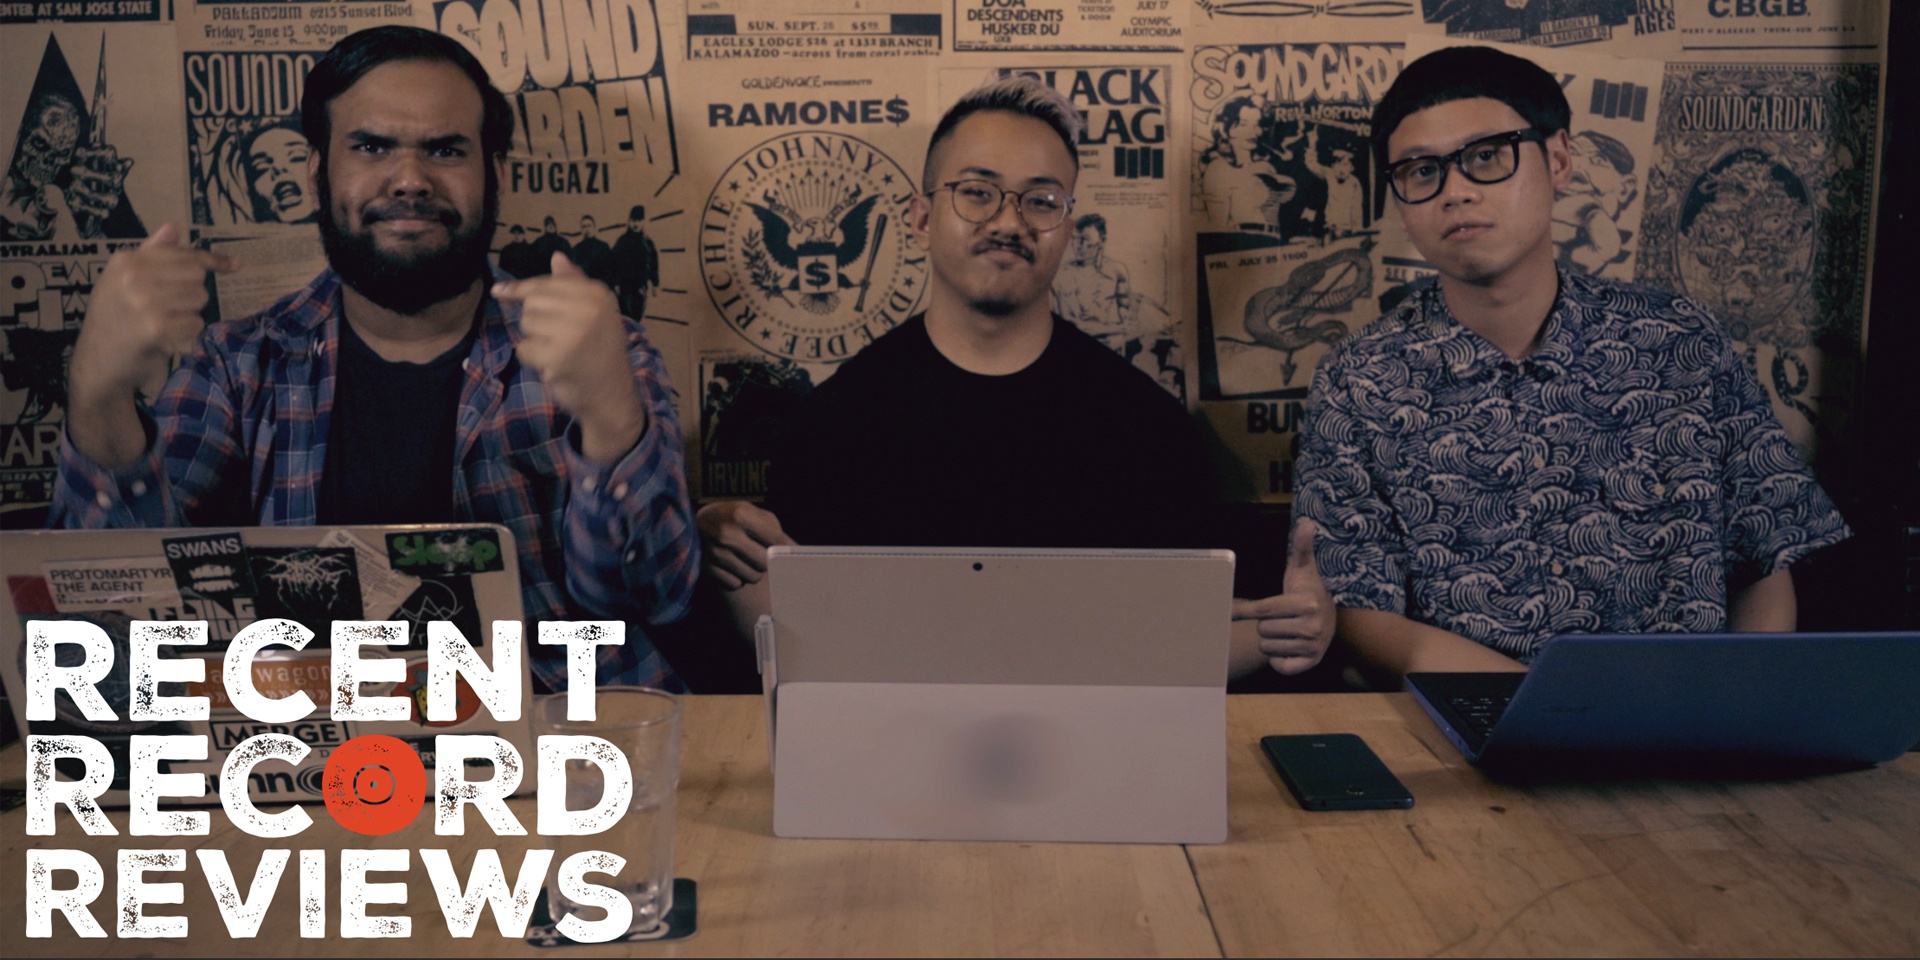 WATCH: Bandwagon Recent Record Reviews #017 - Nicholas Chim, Konono No. 1, Beyonce